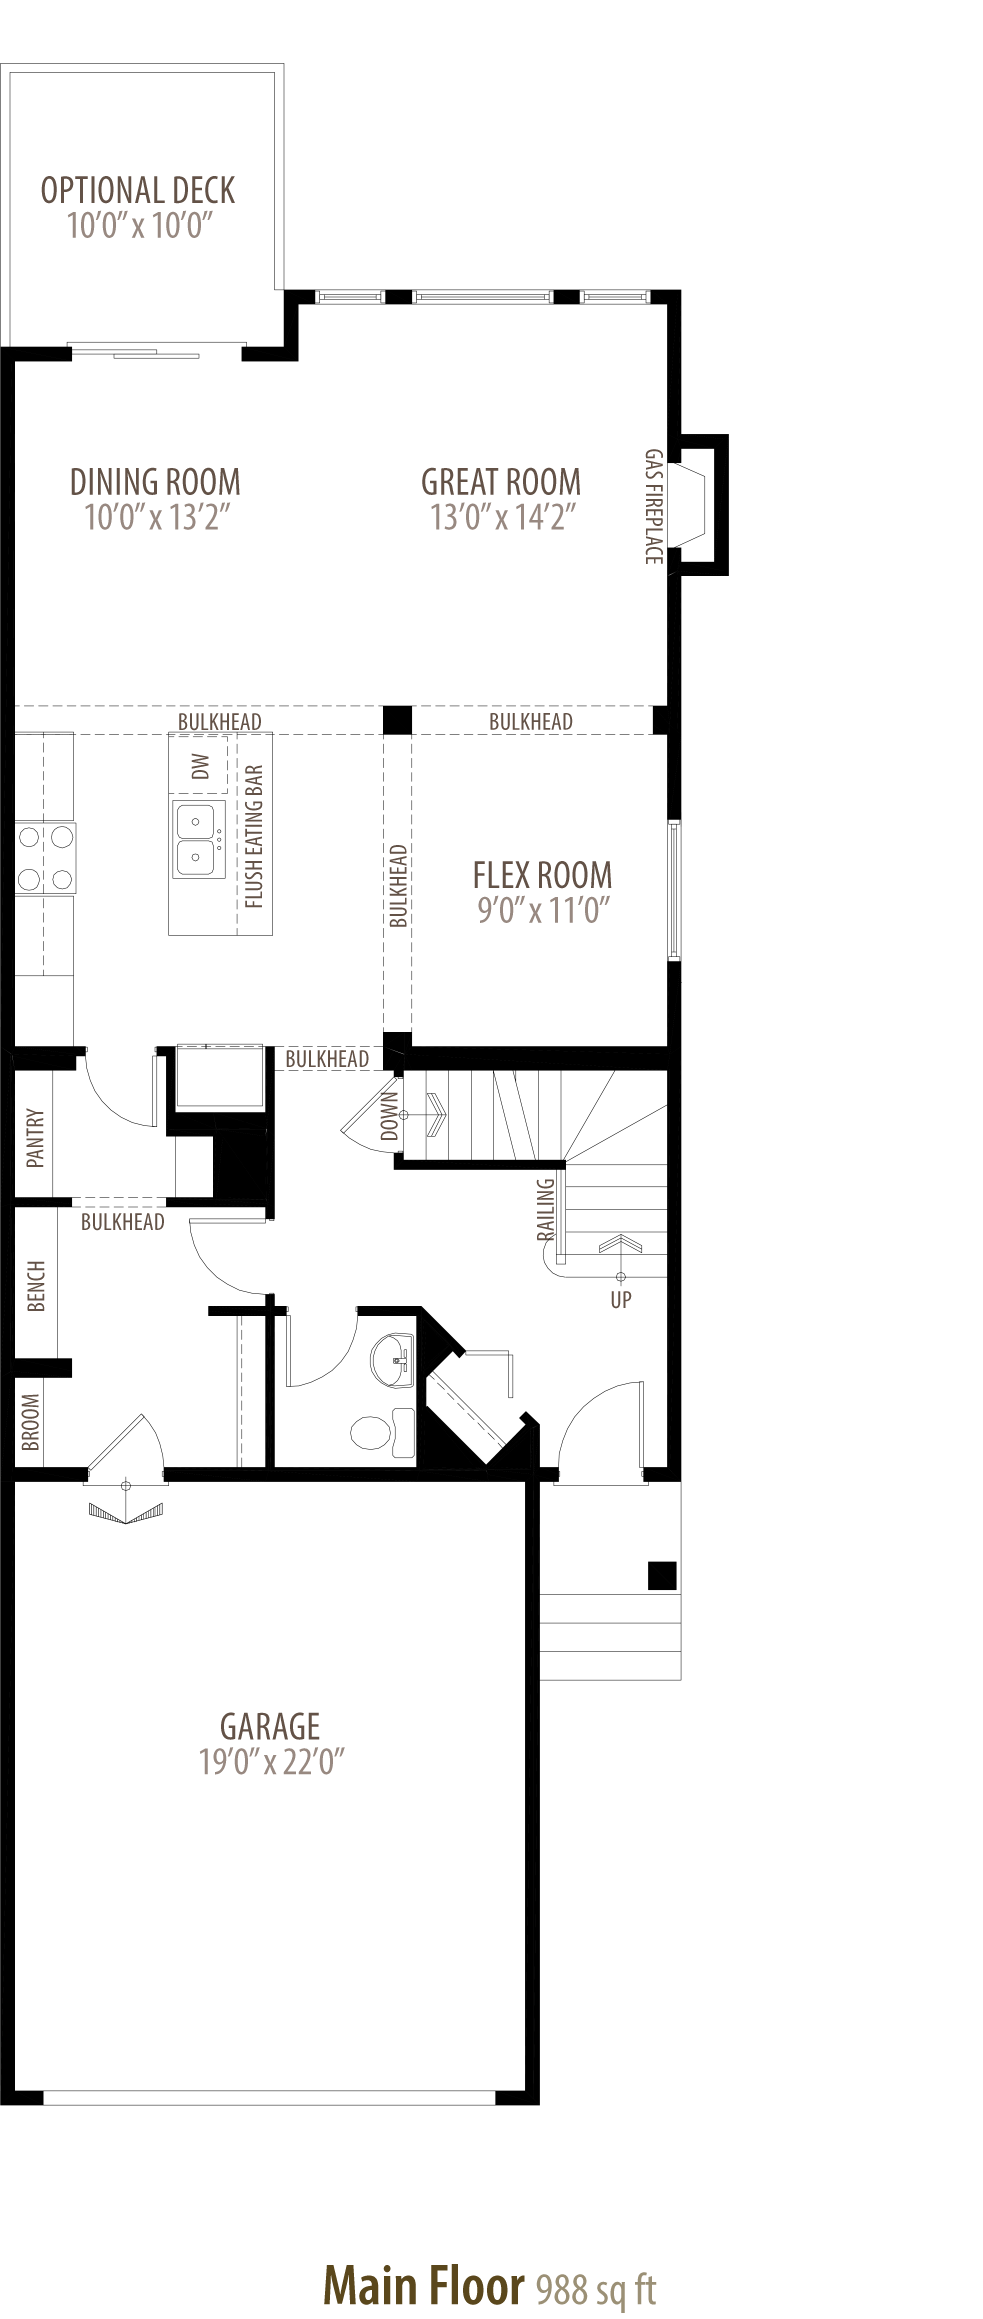 1292 Peregrine Terrace NW Floorplan